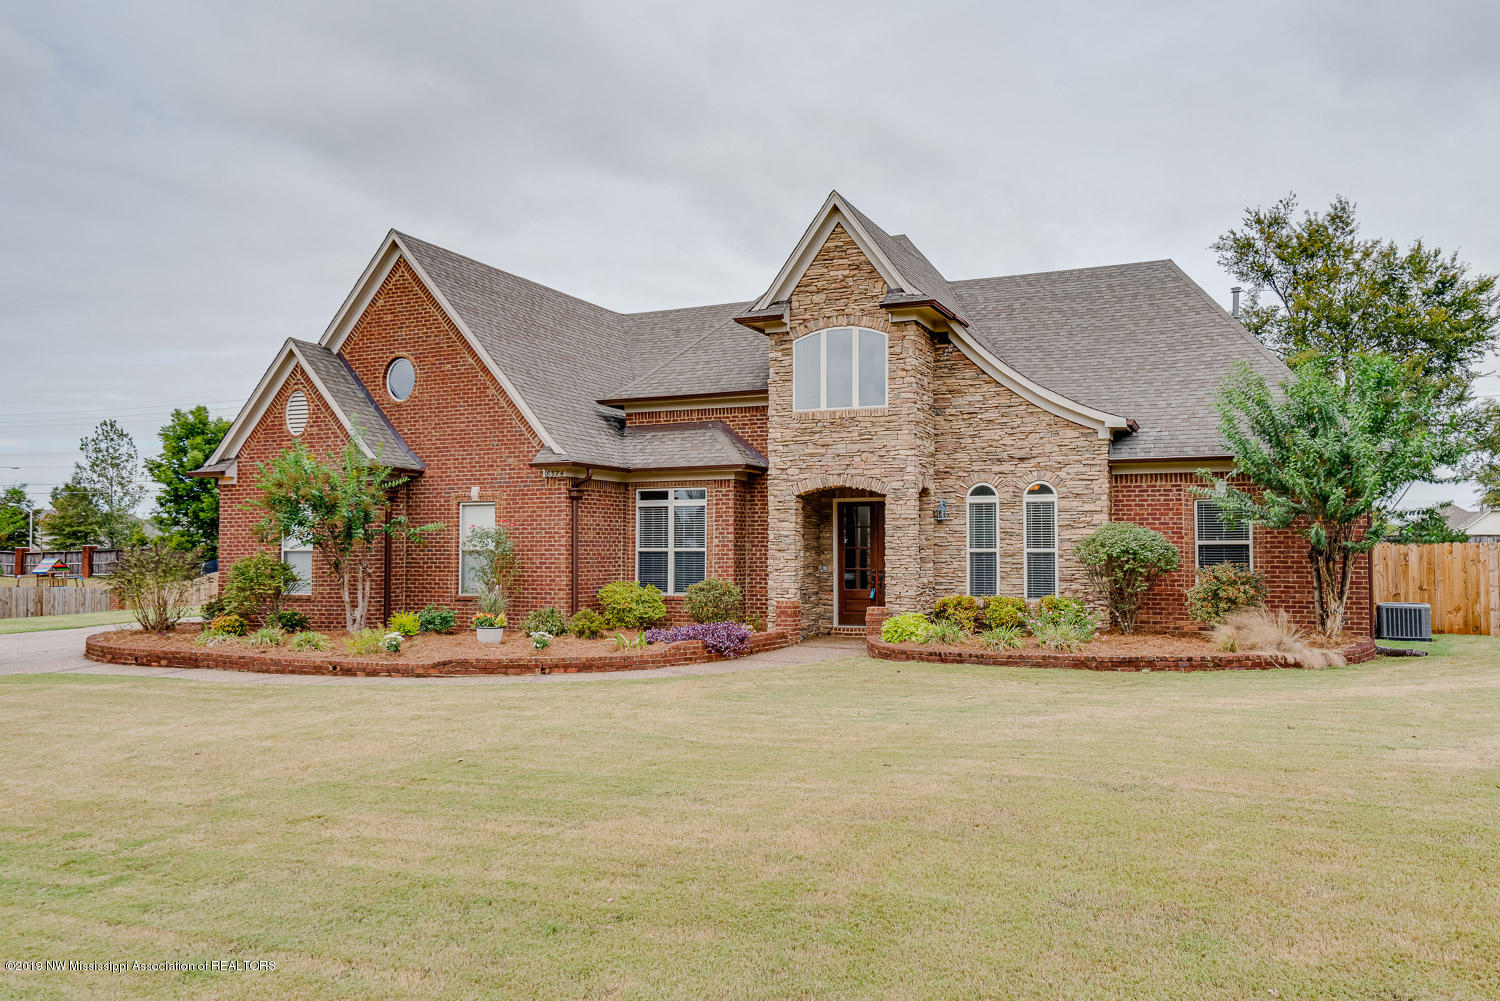 8374 Whites Crossing 38654 - One of Olive Branch Homes for Sale